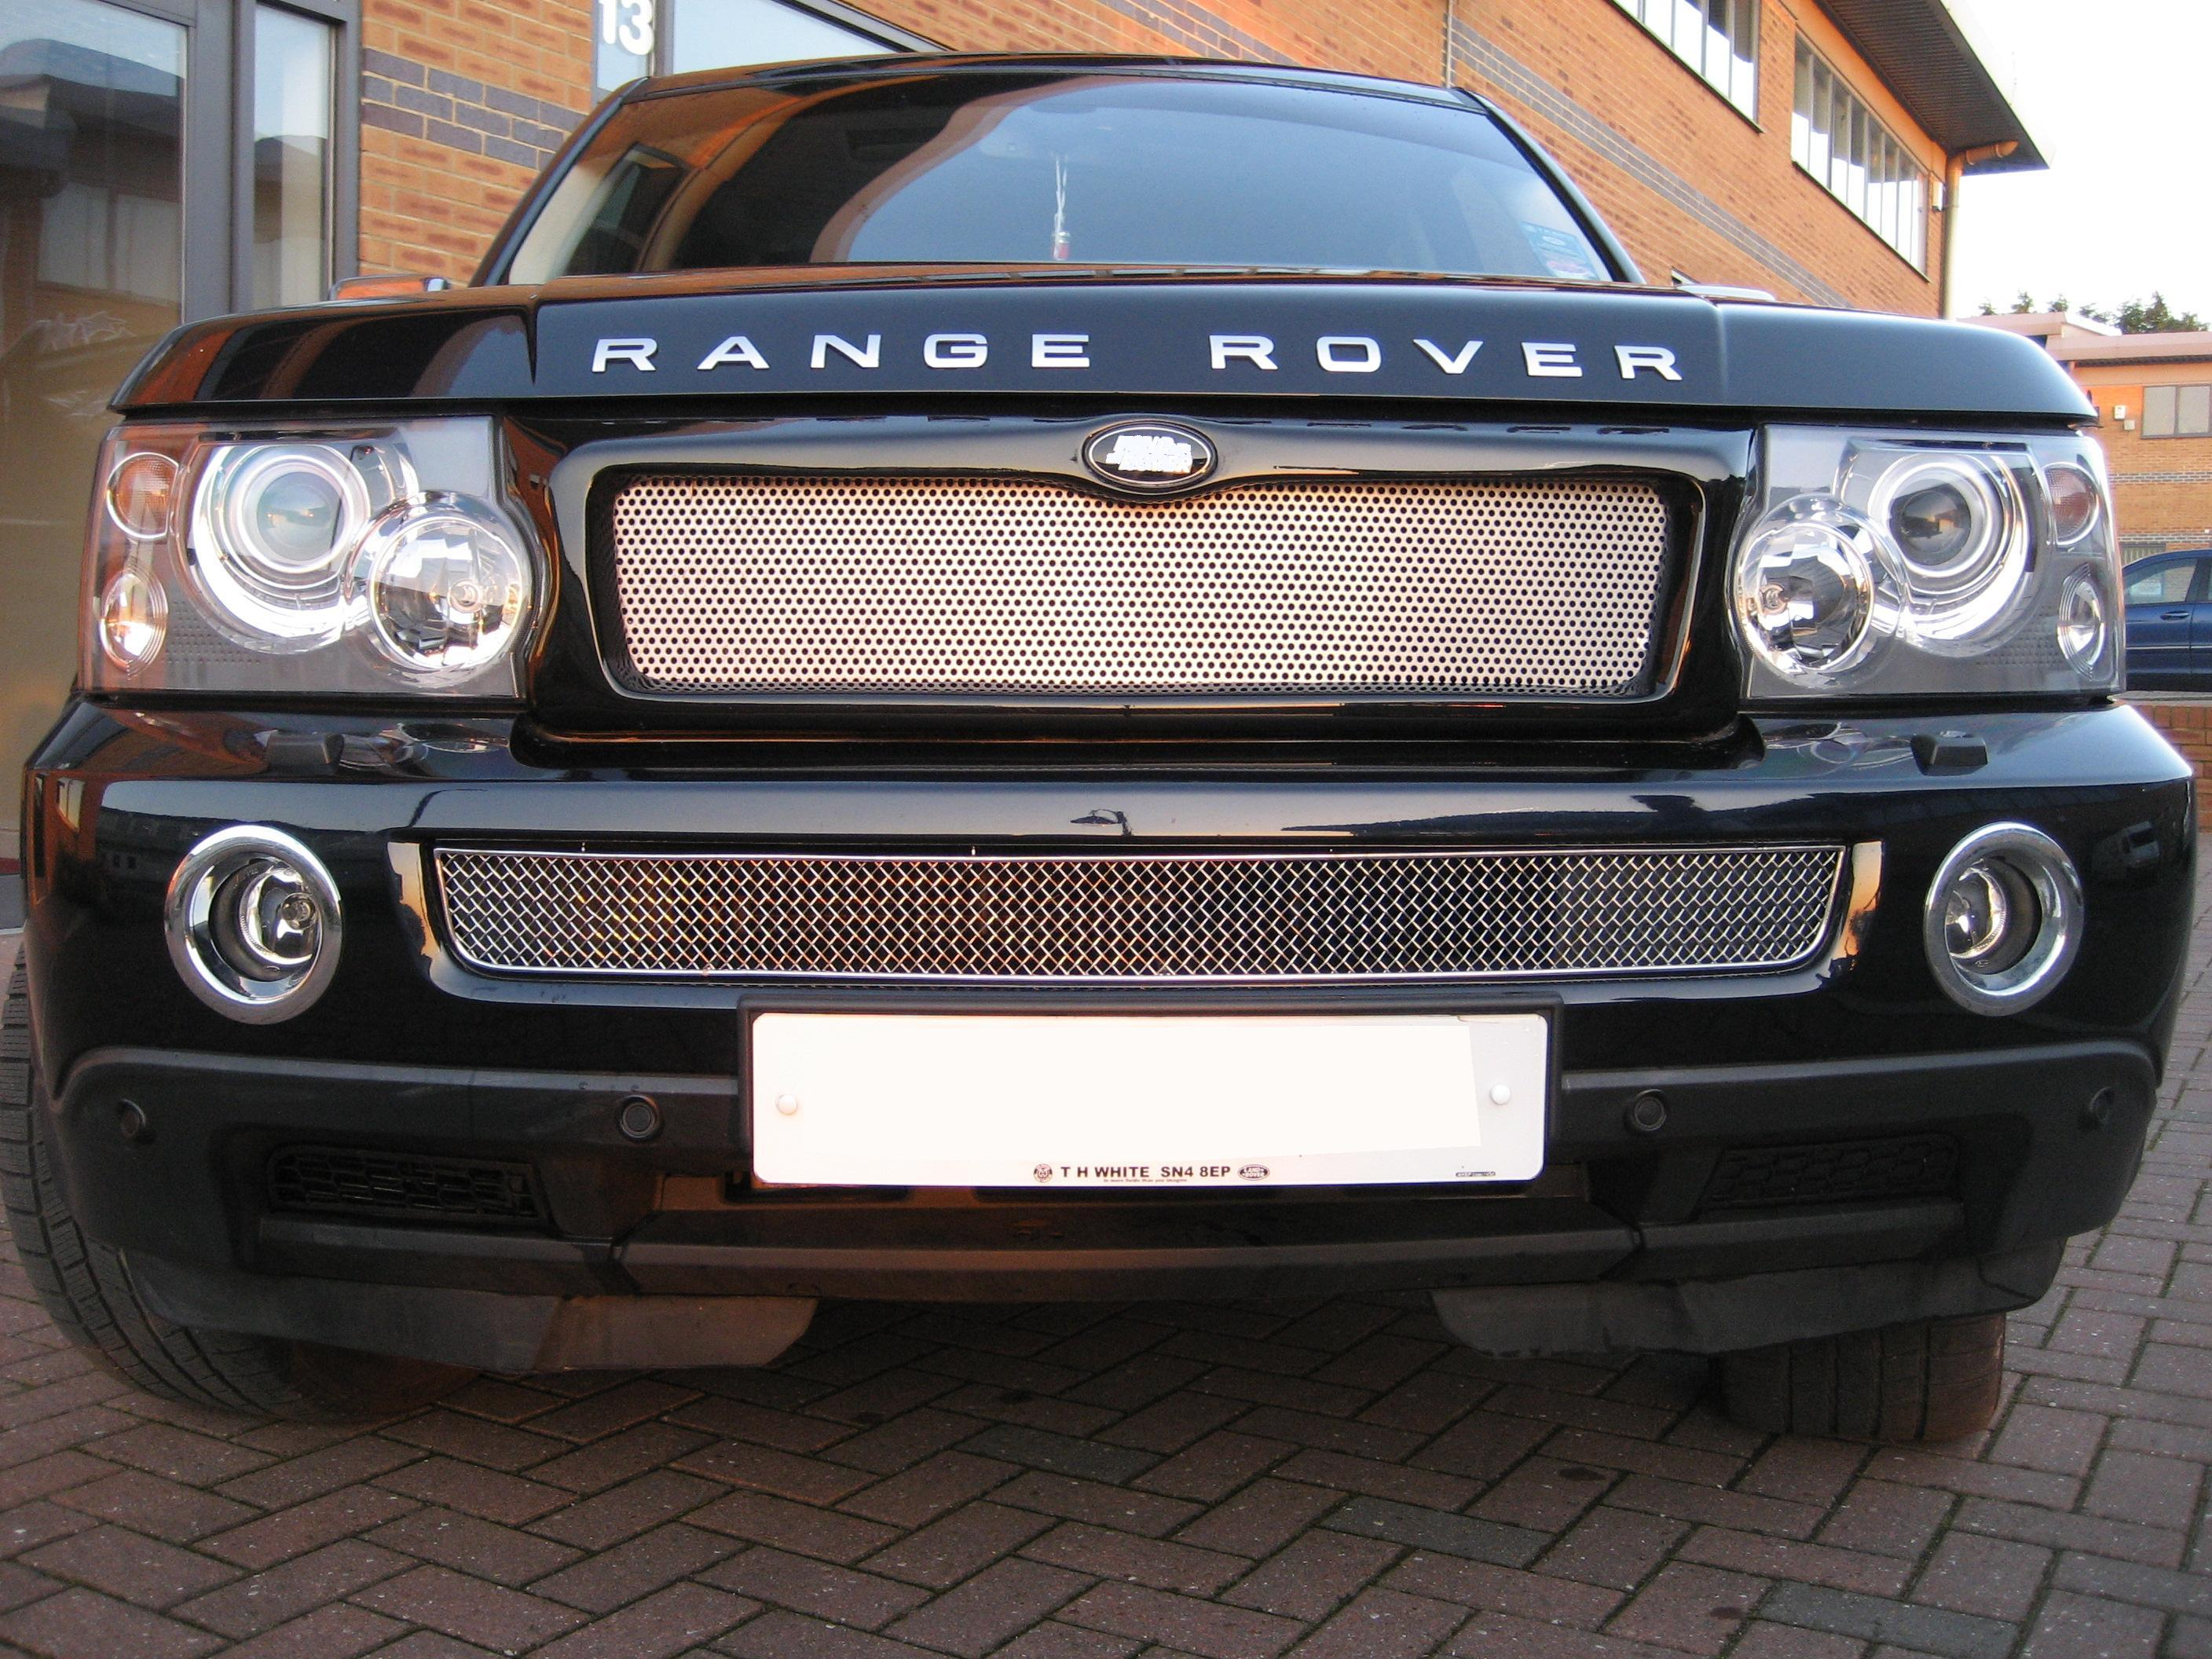 Chrome Bentley Style Lower Mesh Grille For Range Rover